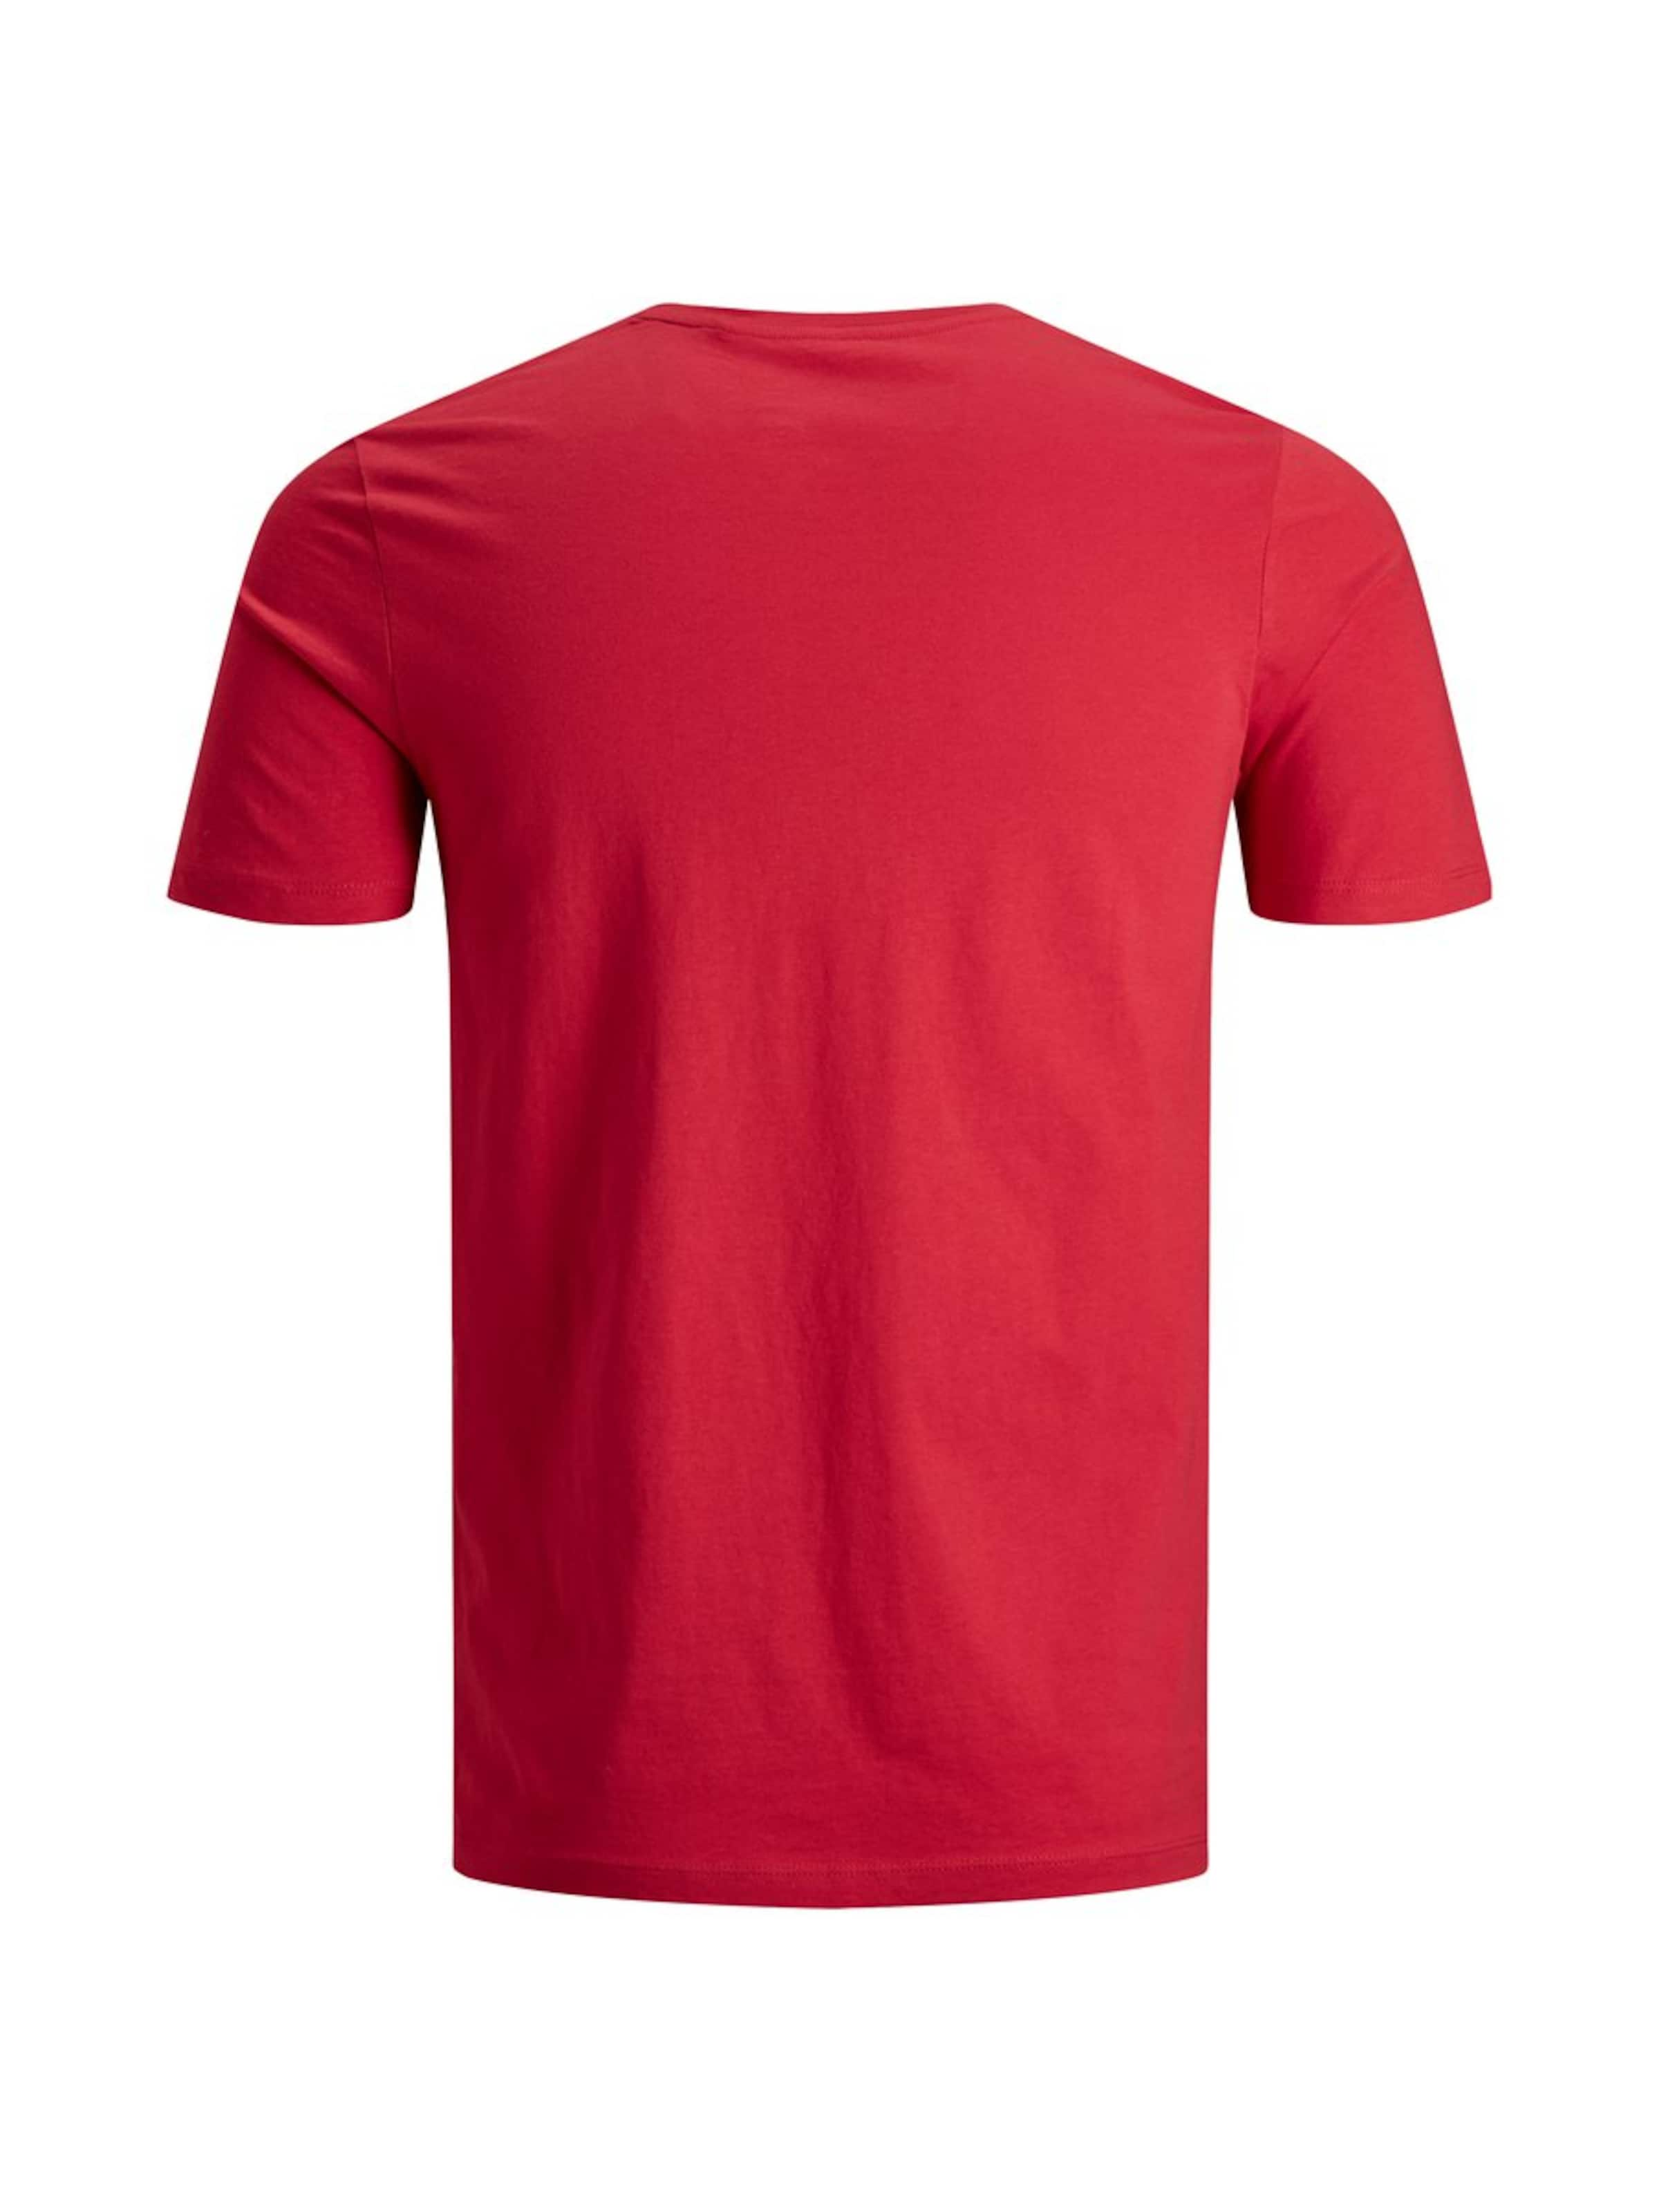 T shirt RougeBlanc Jackamp; En Jones k8wPn0O